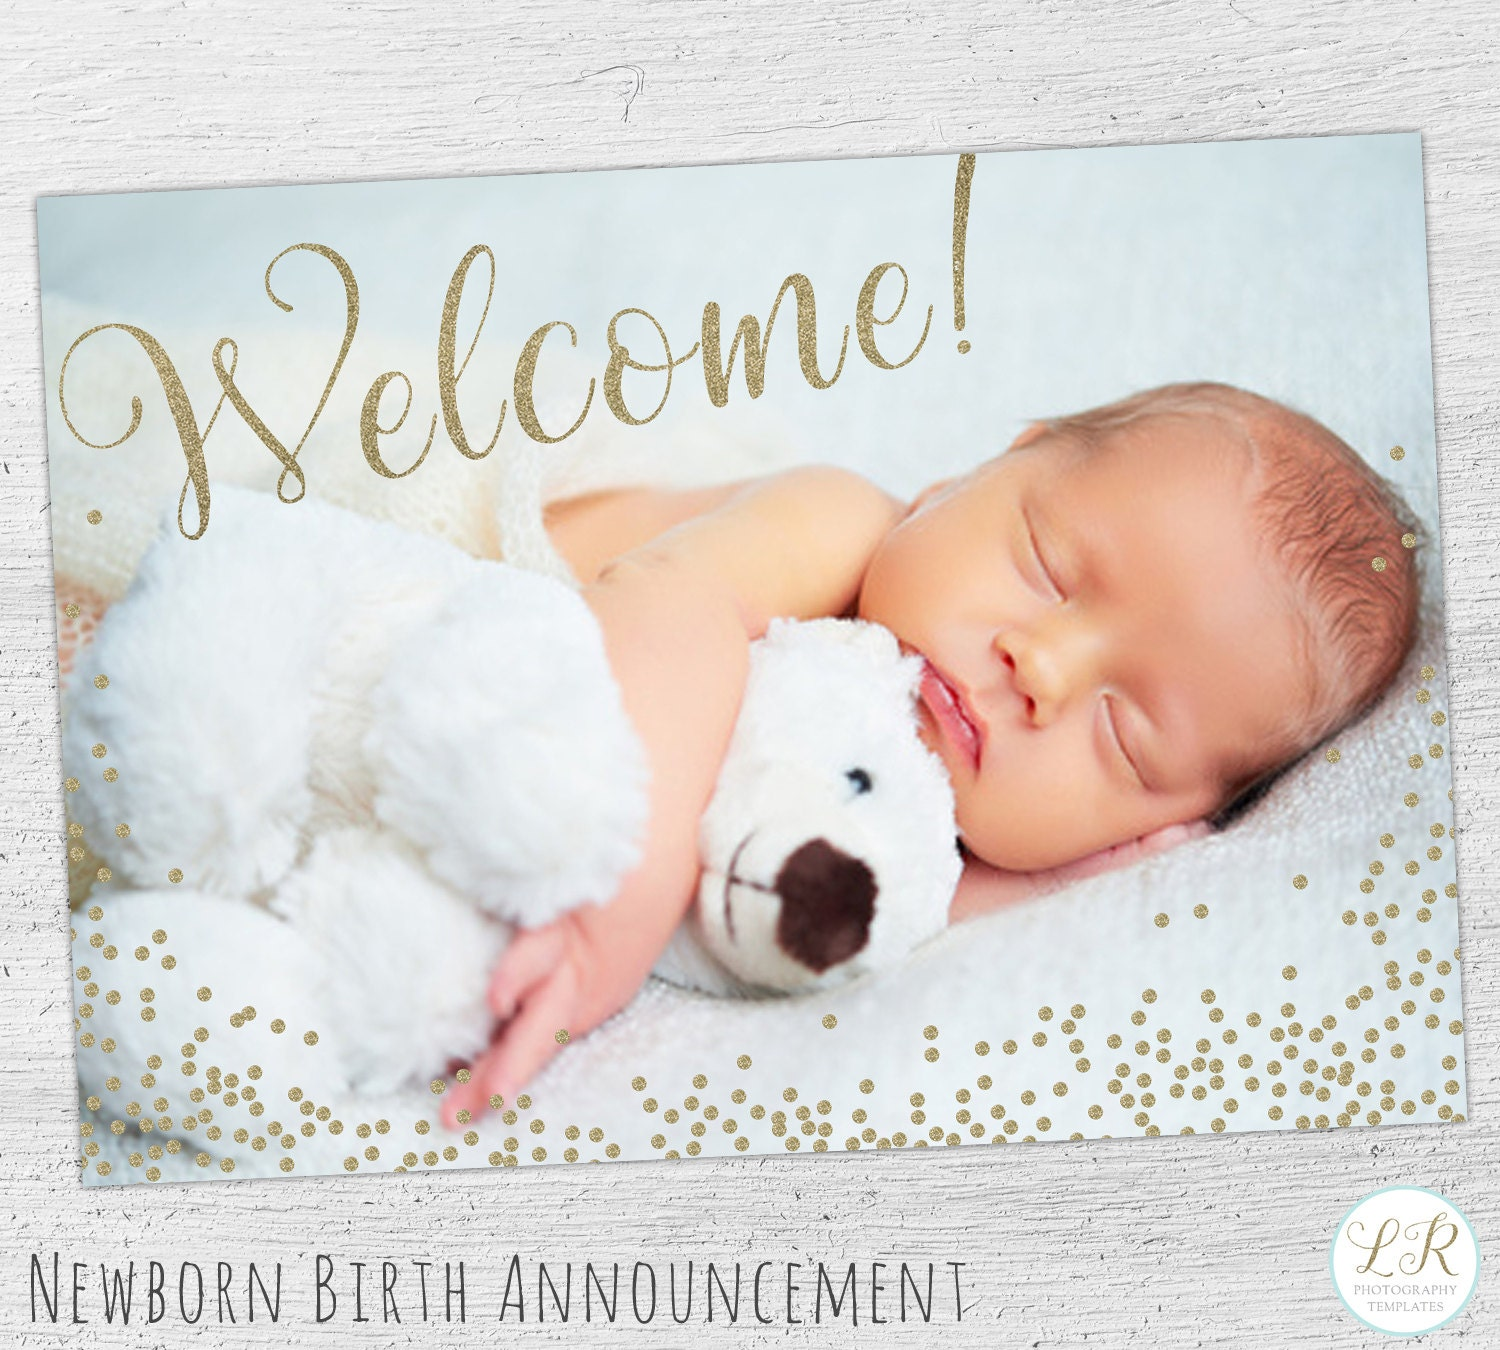 birth announcement template newborn announcement birth. Black Bedroom Furniture Sets. Home Design Ideas